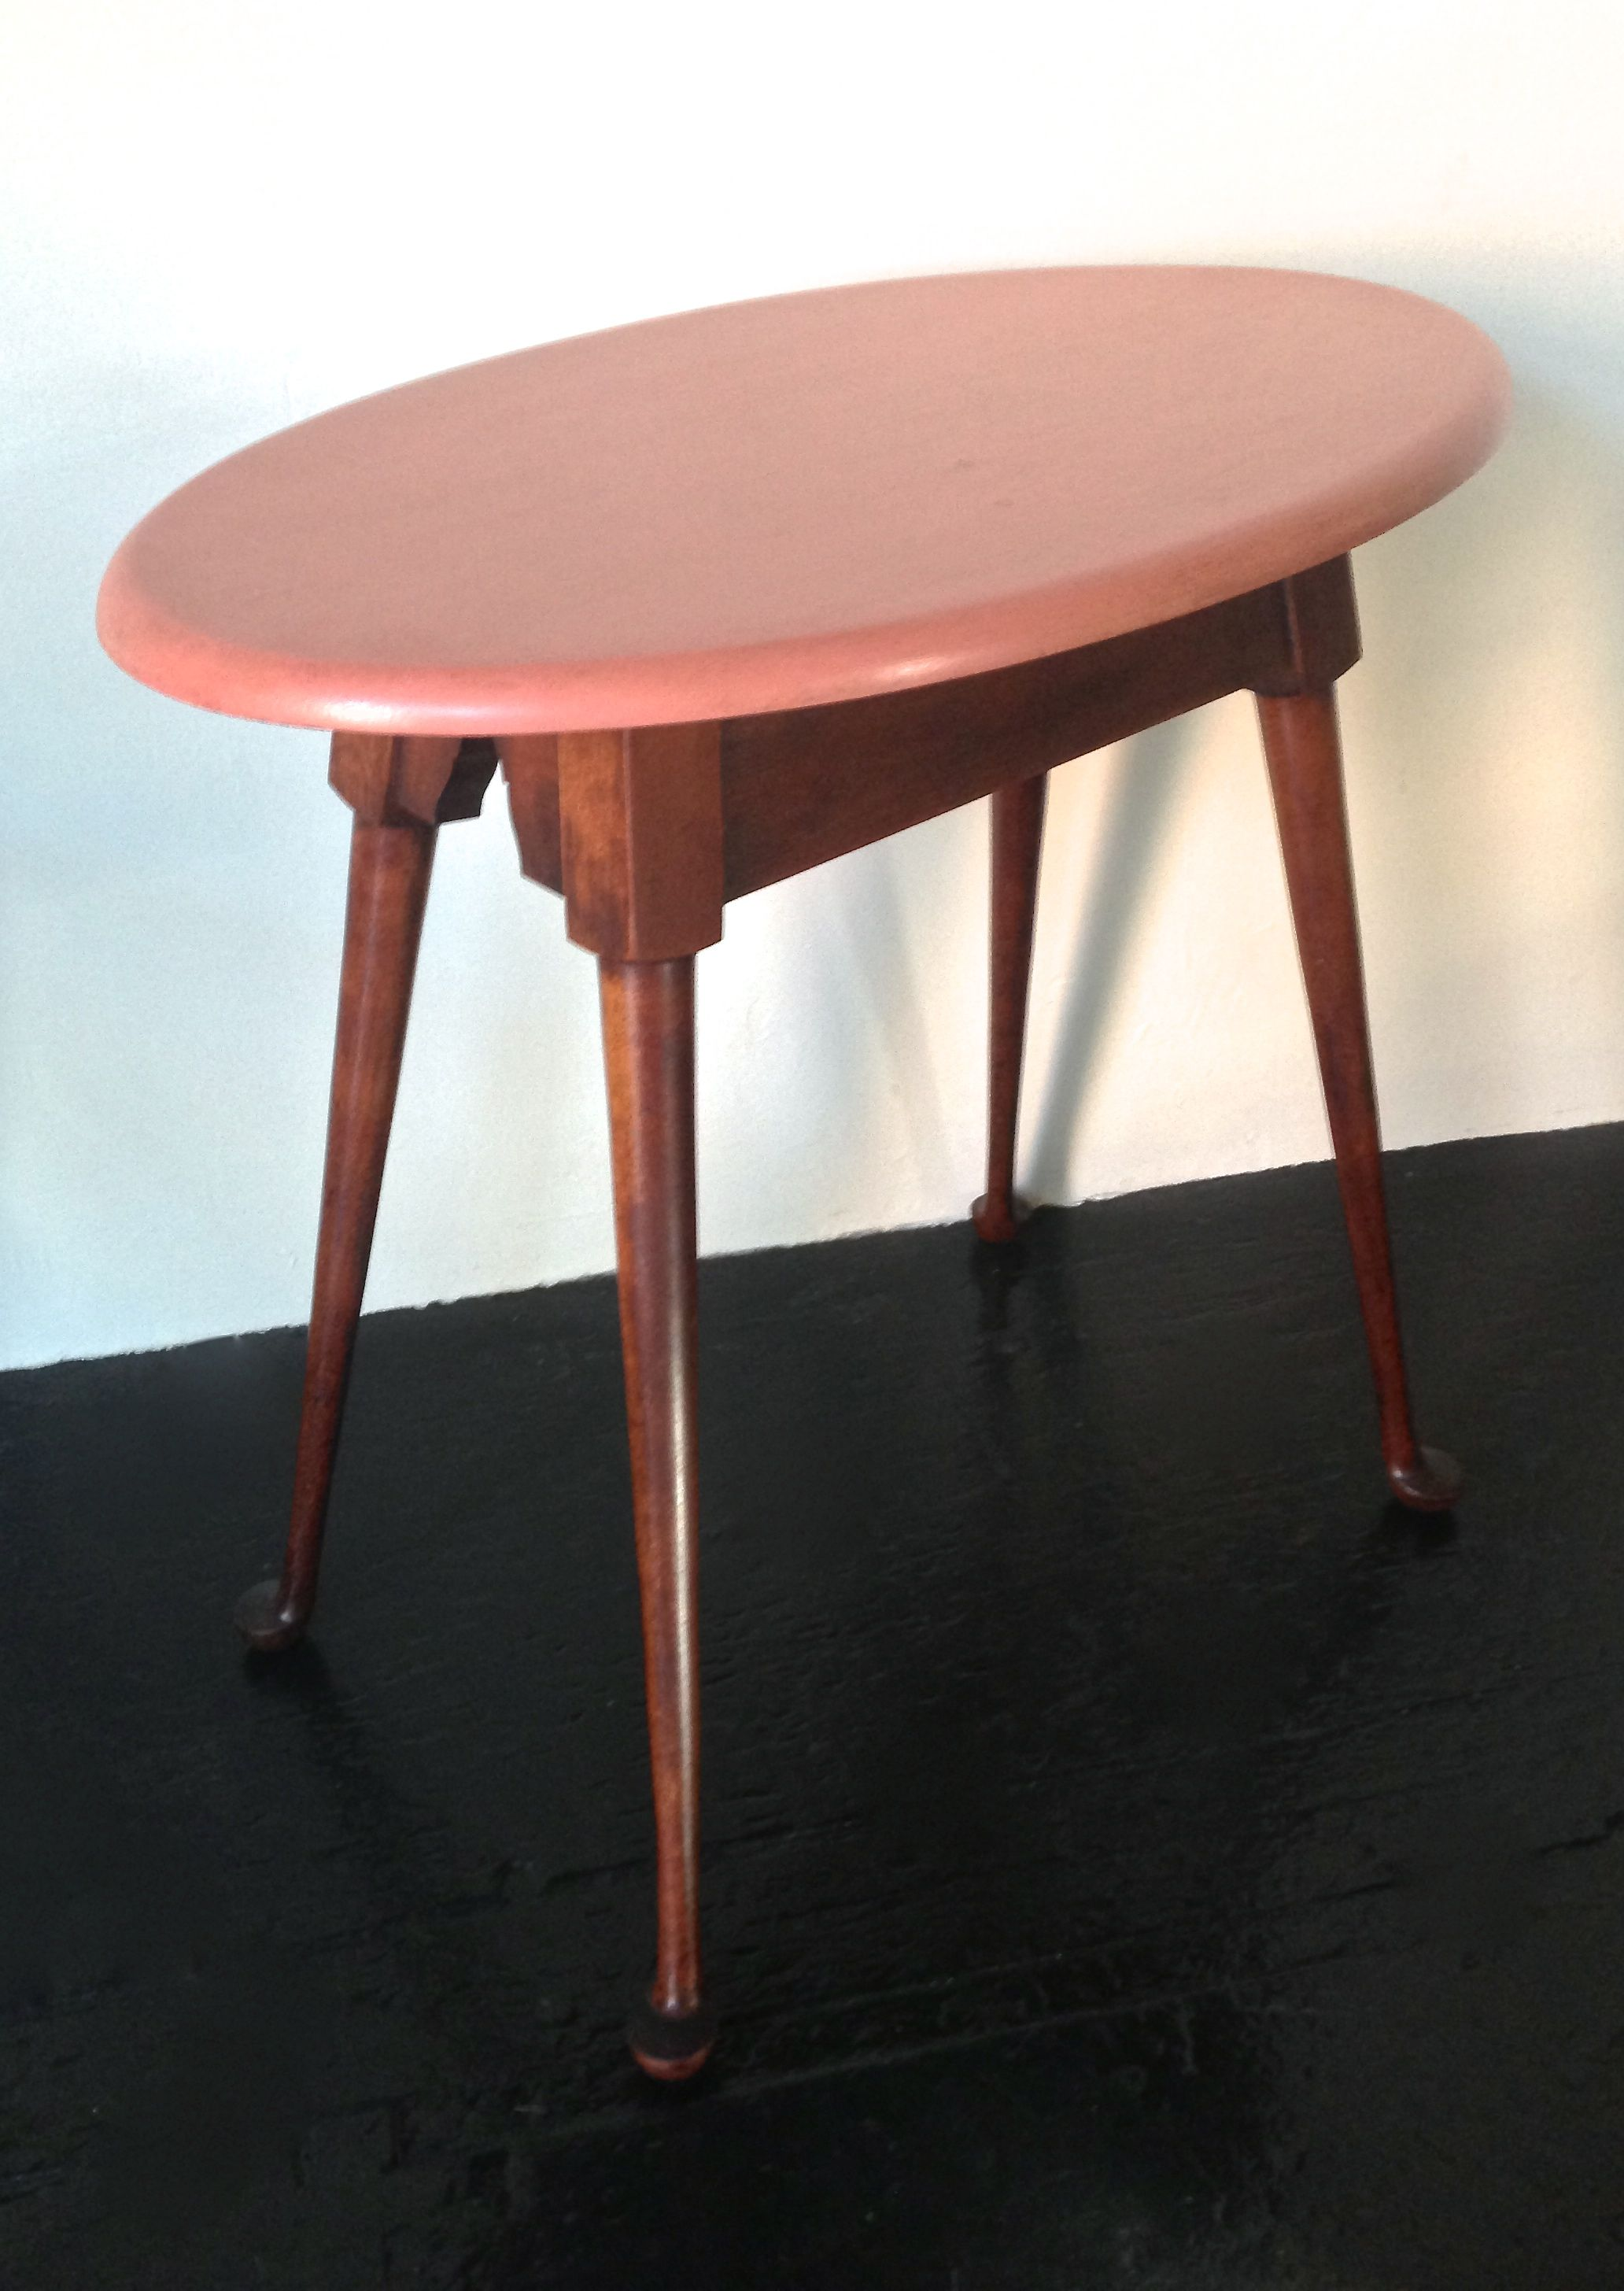 Antique Conant Ball Queen Anne Style Oval Tea Table 1930s with carved ' golf club ' legs, Quite commonly used as a Side Table Stamped with Conant Ball Mark Dims: 25″×151/2″×24″